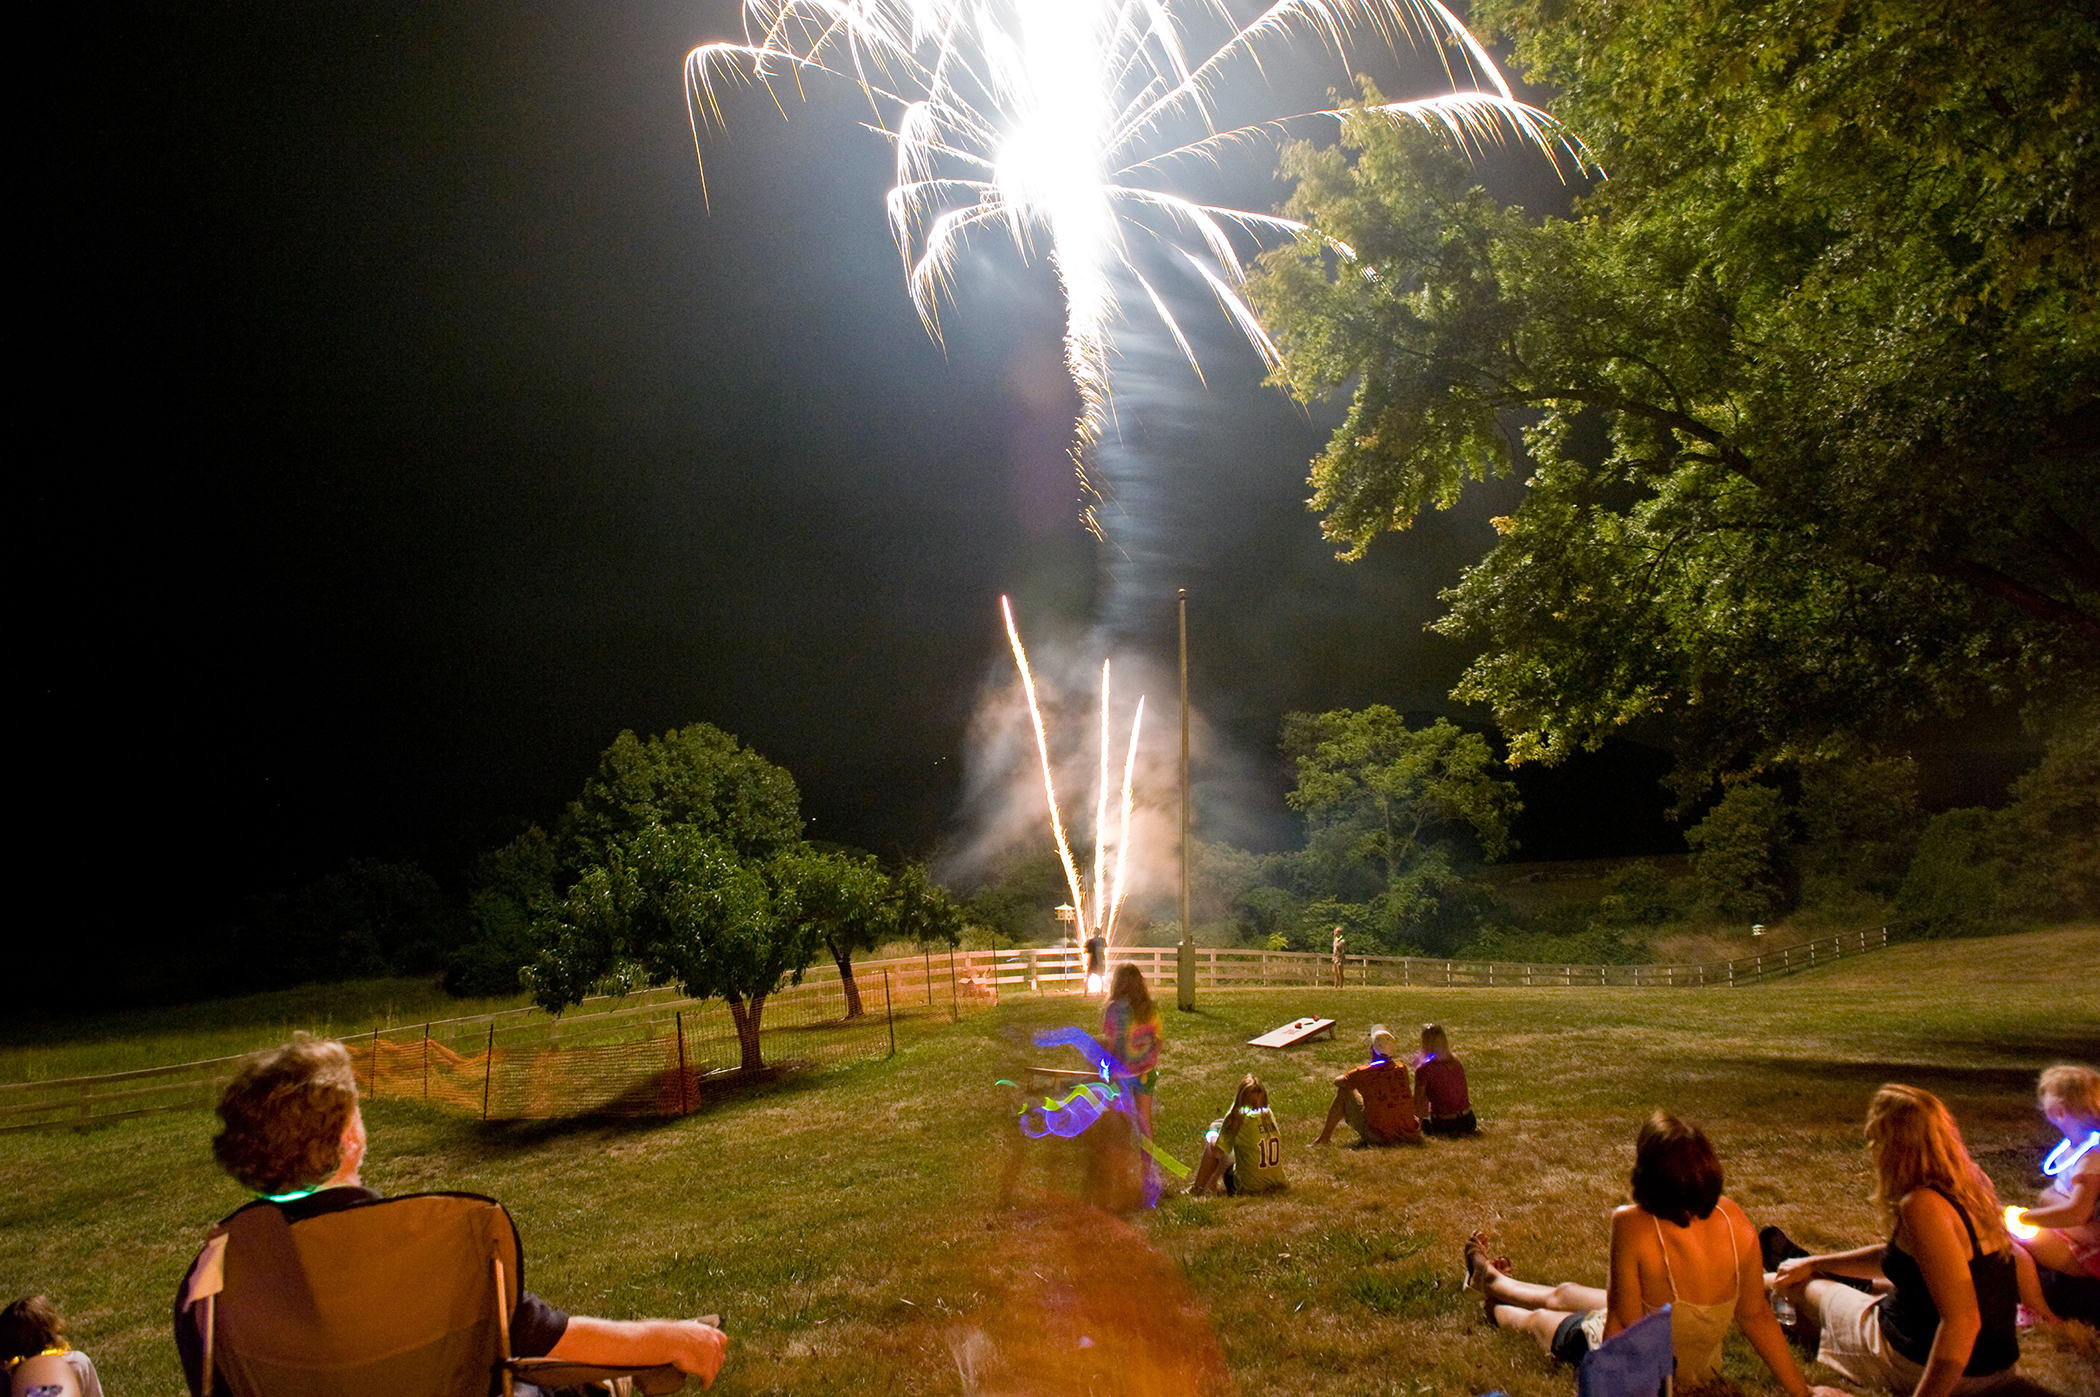 How to Get the Biggest Fireworks Bang for Your Buck